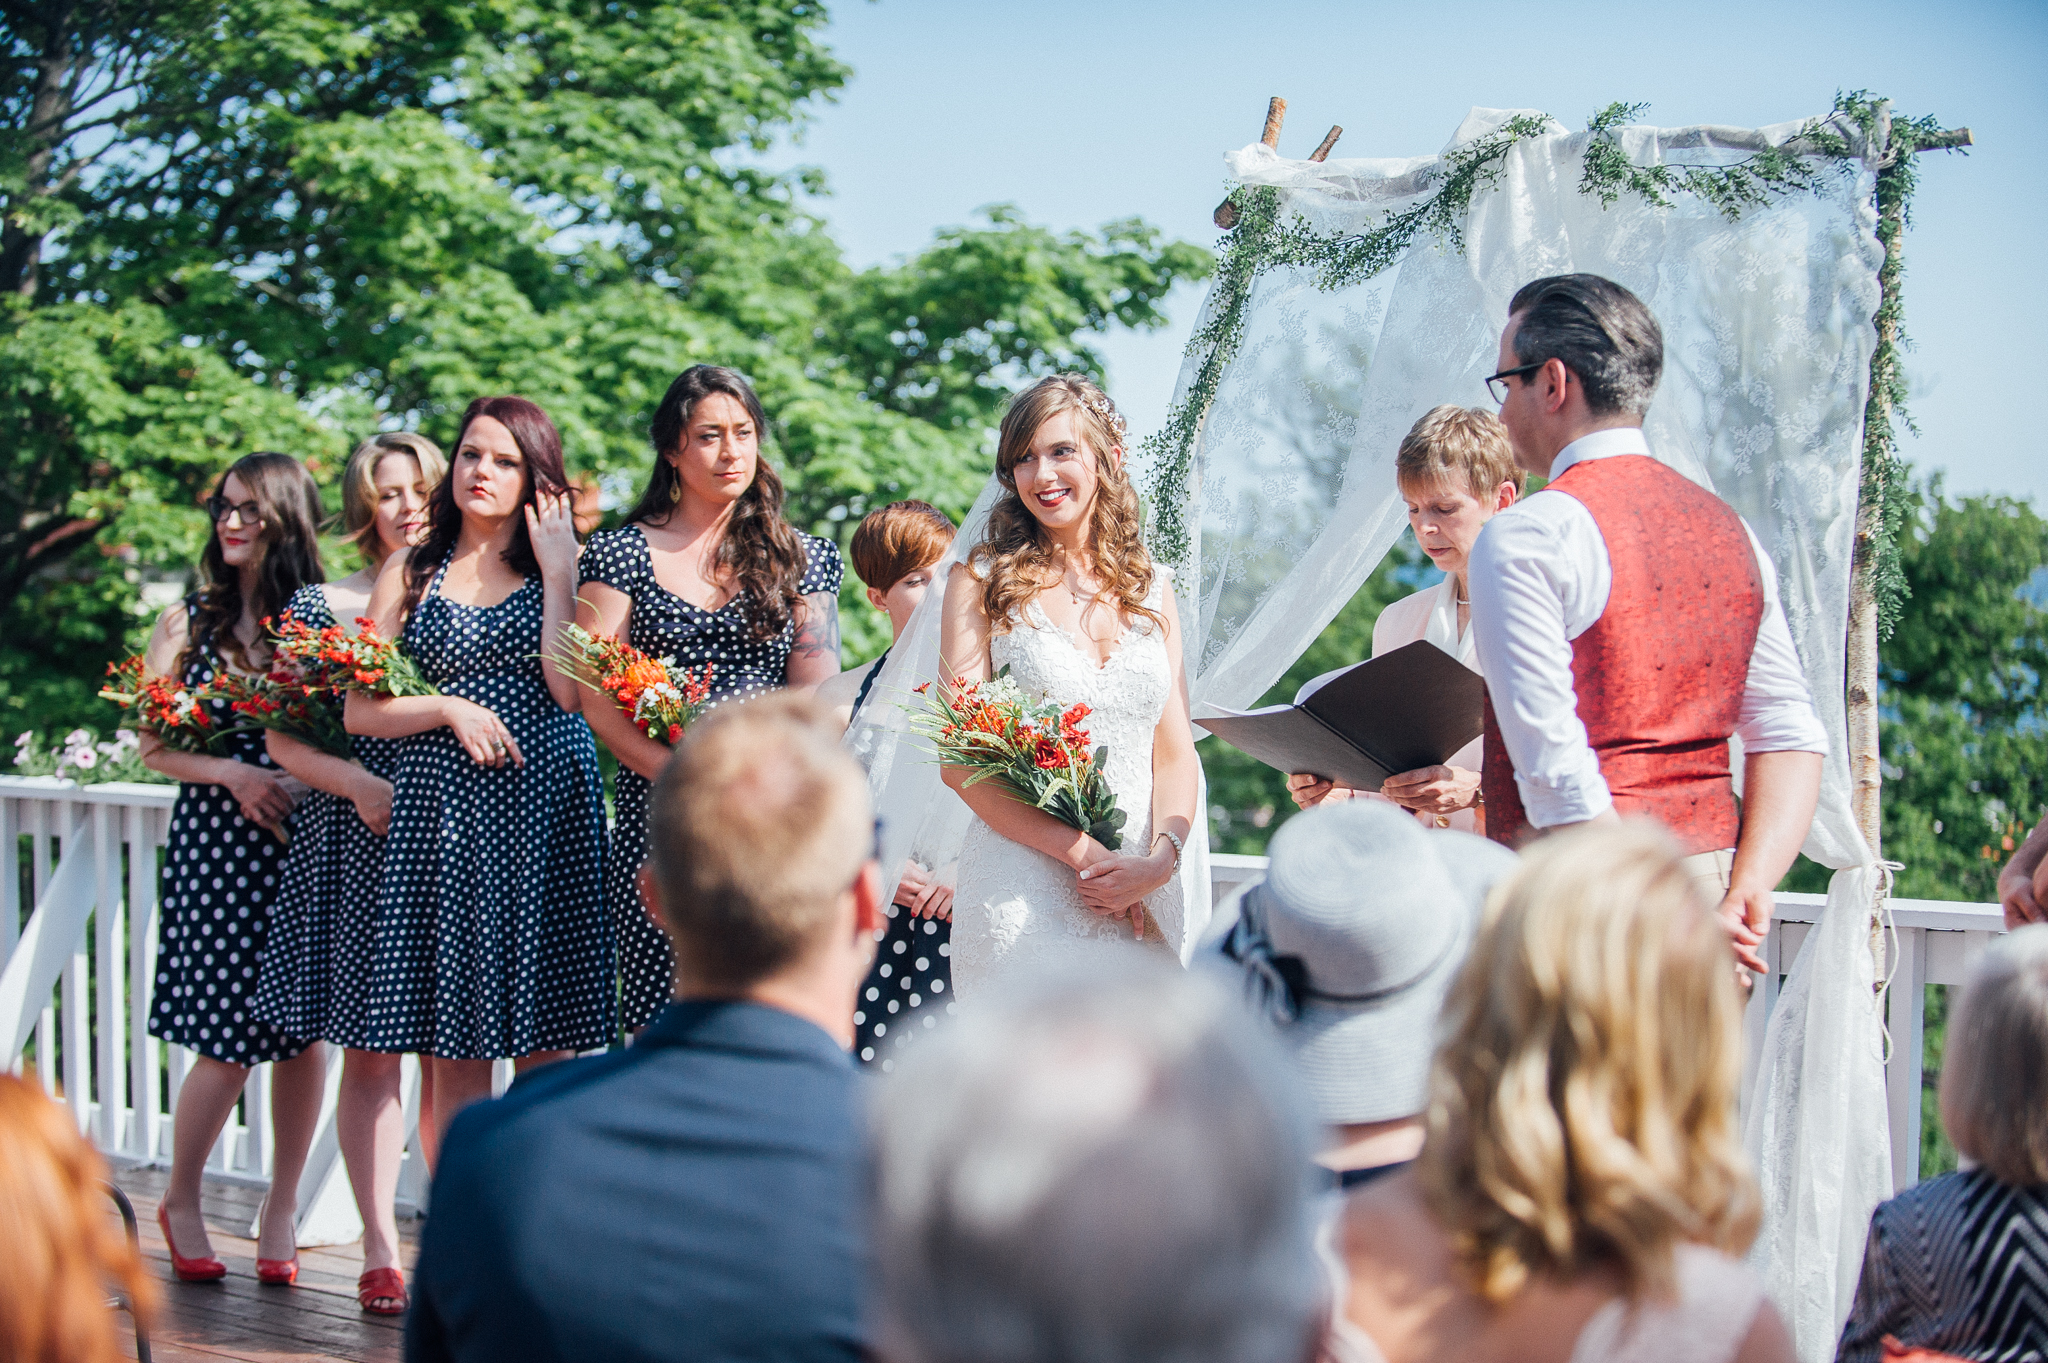 Rustic and nautical wedding in lunenburg nova scotia nova the couple used the colours of reds blues and golds and combined them with buoys lanterns rope and stripes to give their wedding lots of nautical charm ombrellifo Choice Image